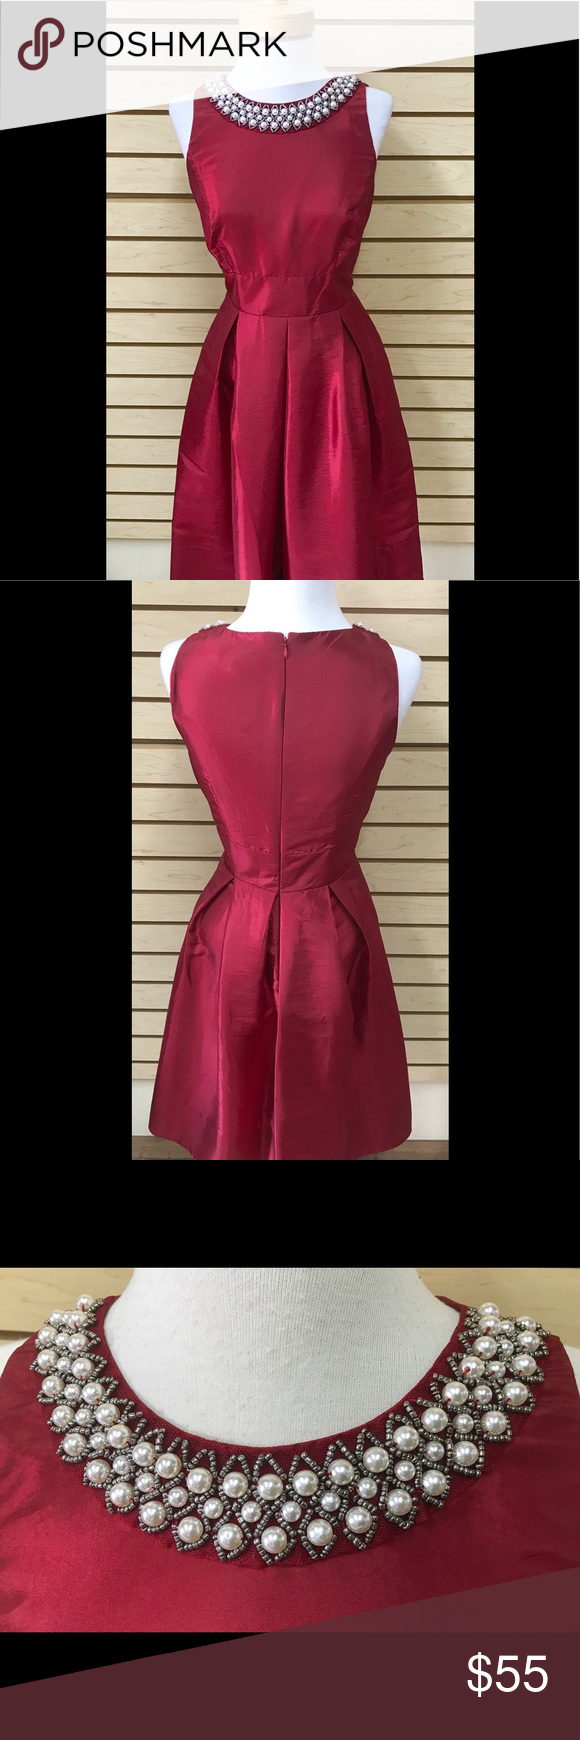 Sangria Cocktail Dress With Pearl Details A Beautiful Wine Colored Cocktail Dress Ideal For The Holiday Season The Dress Ha Sangria Dress Dresses Pearl Dress [ 1740 x 580 Pixel ]